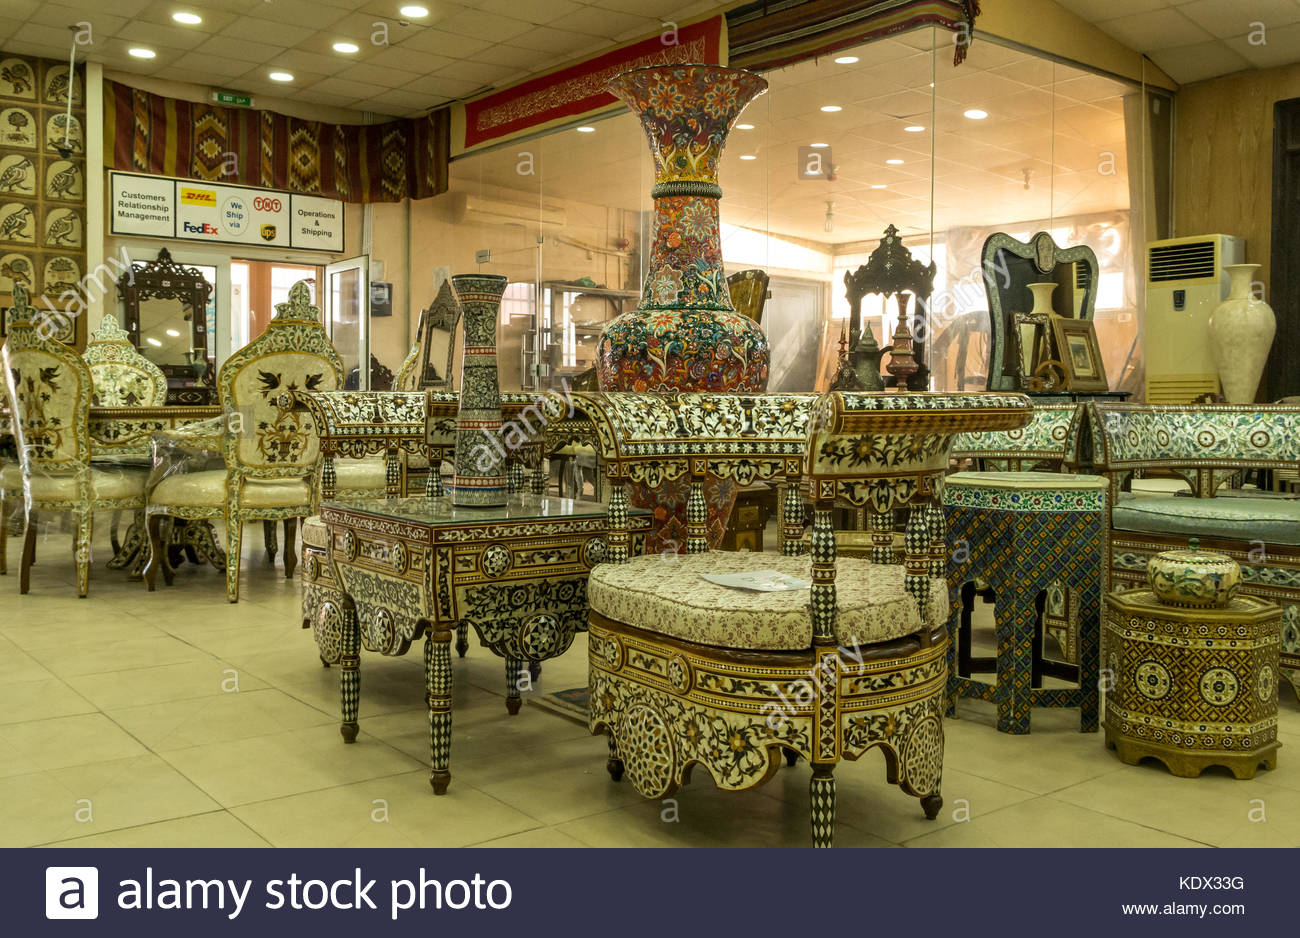 Interior Of Madaba Art And Handicraft Centre With Mother Of Pearl Inlay  Woodwork And Furniture In Shop Display, Jordan, Middle East